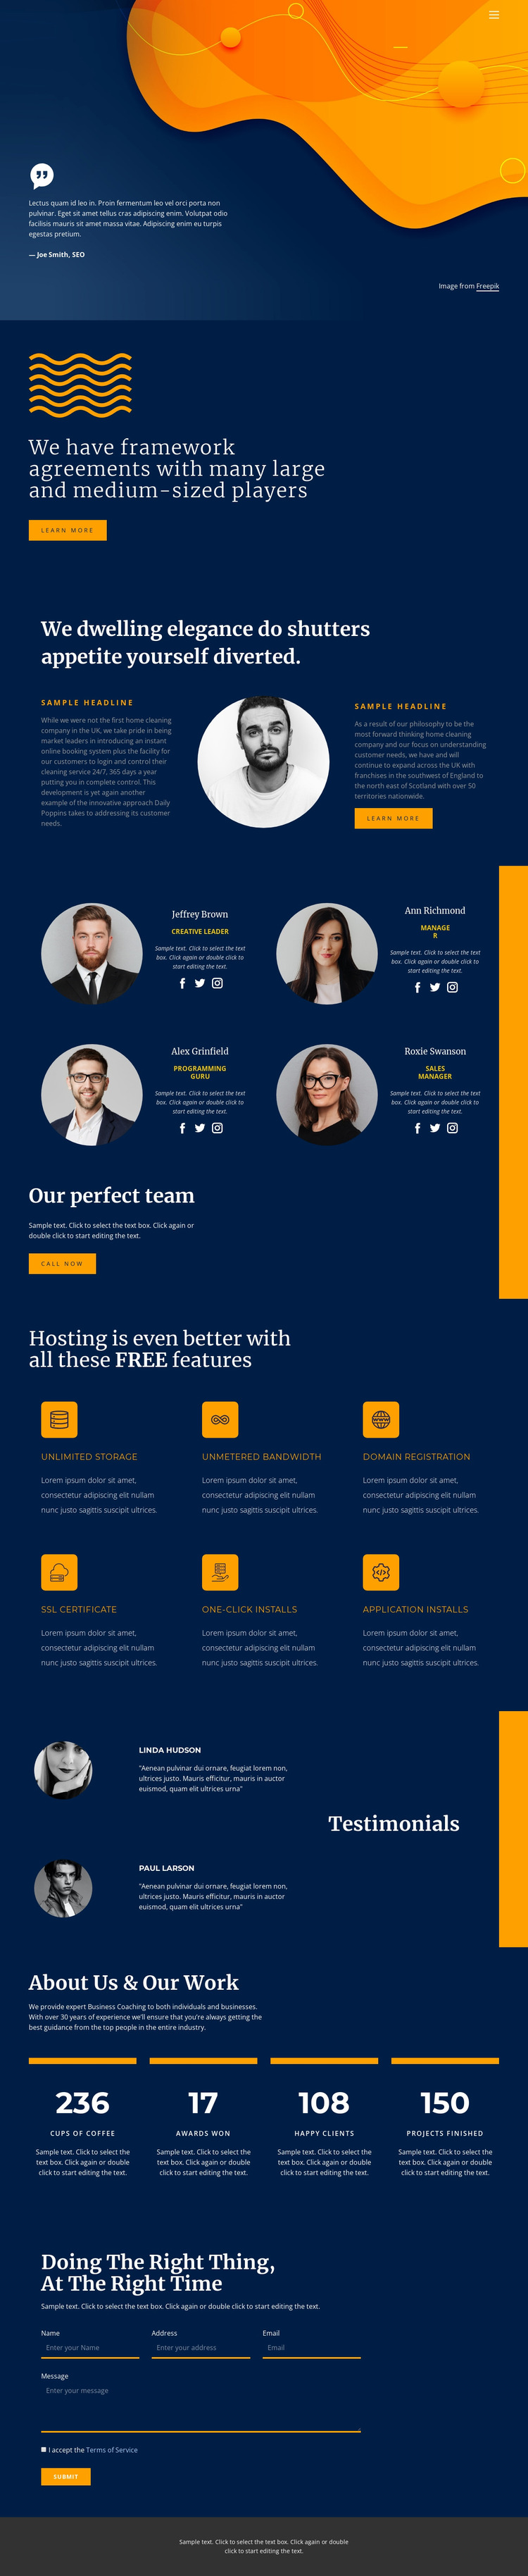 Quality, speed and result Website Mockup